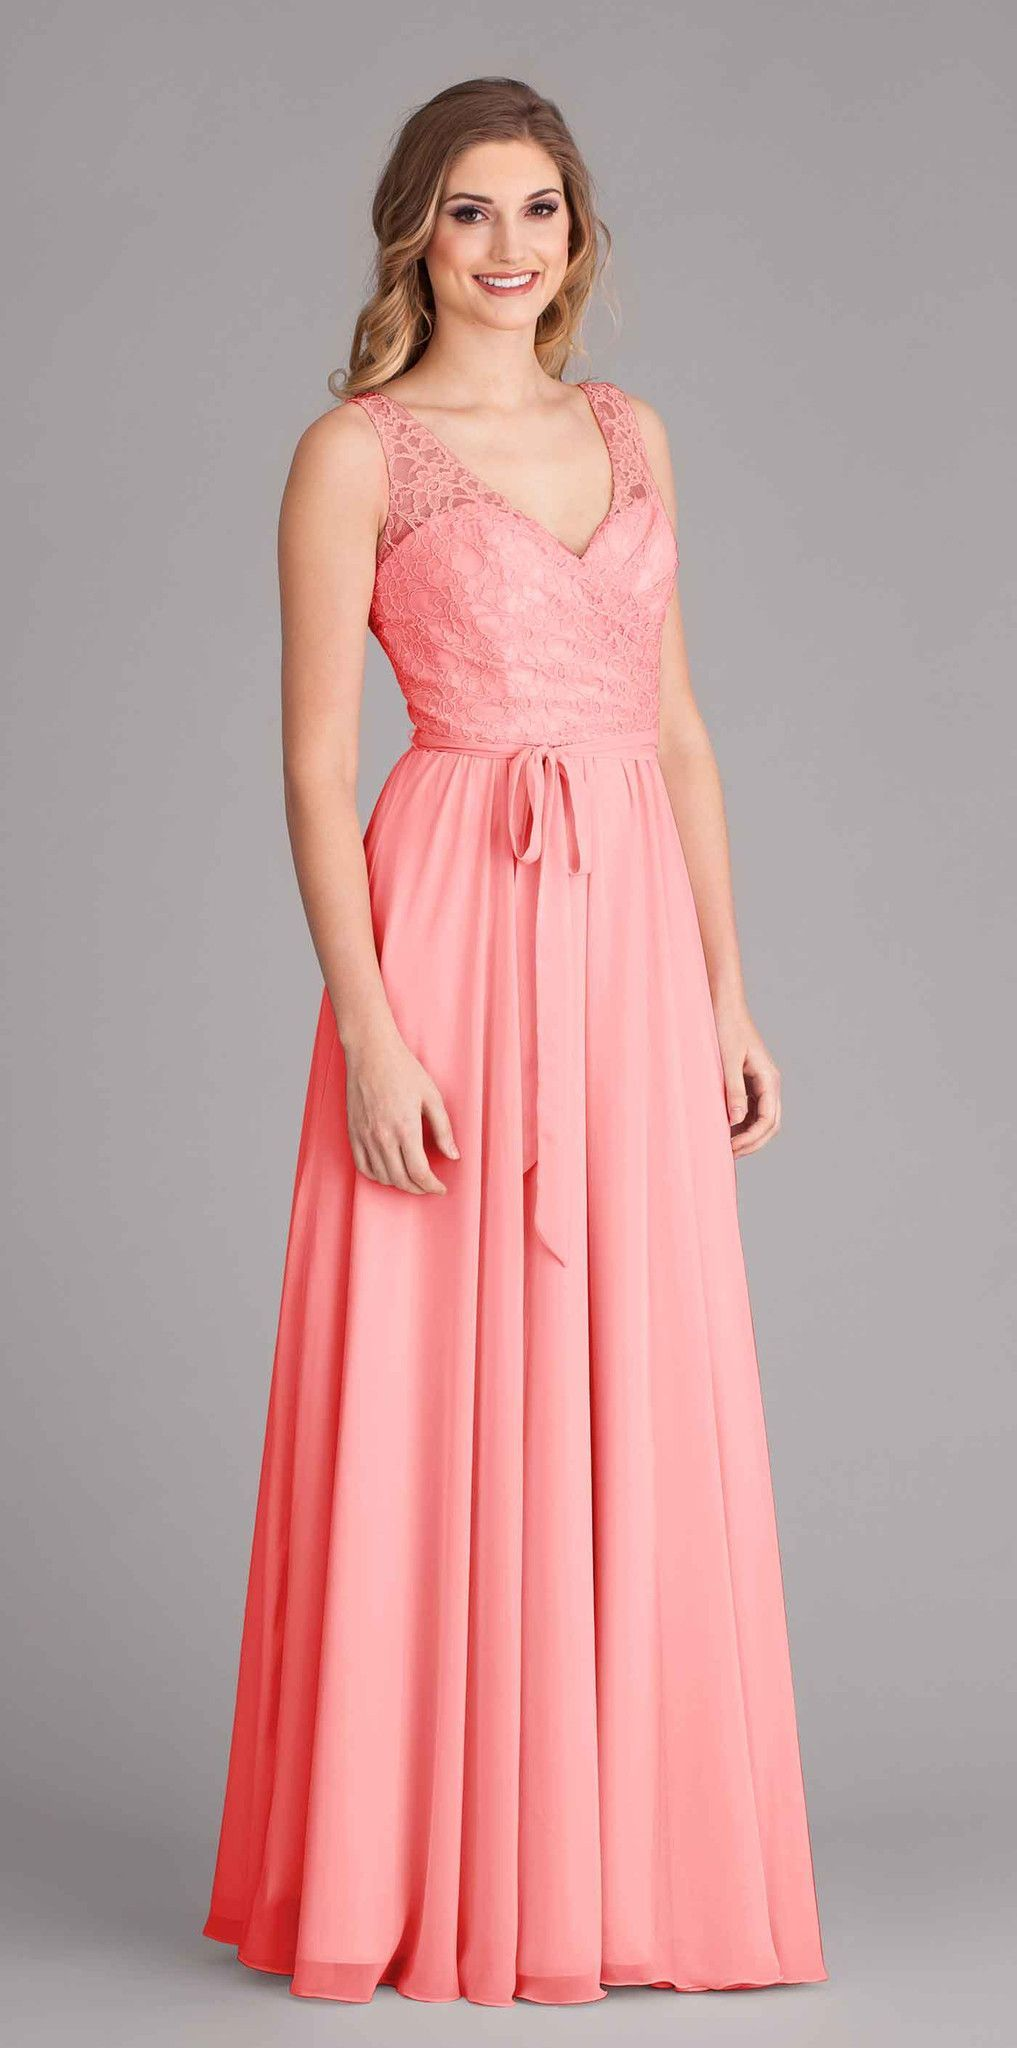 Coralbrooke lace top bridesmaid dress kennedy blue bridesmaid brooke ombrellifo Images